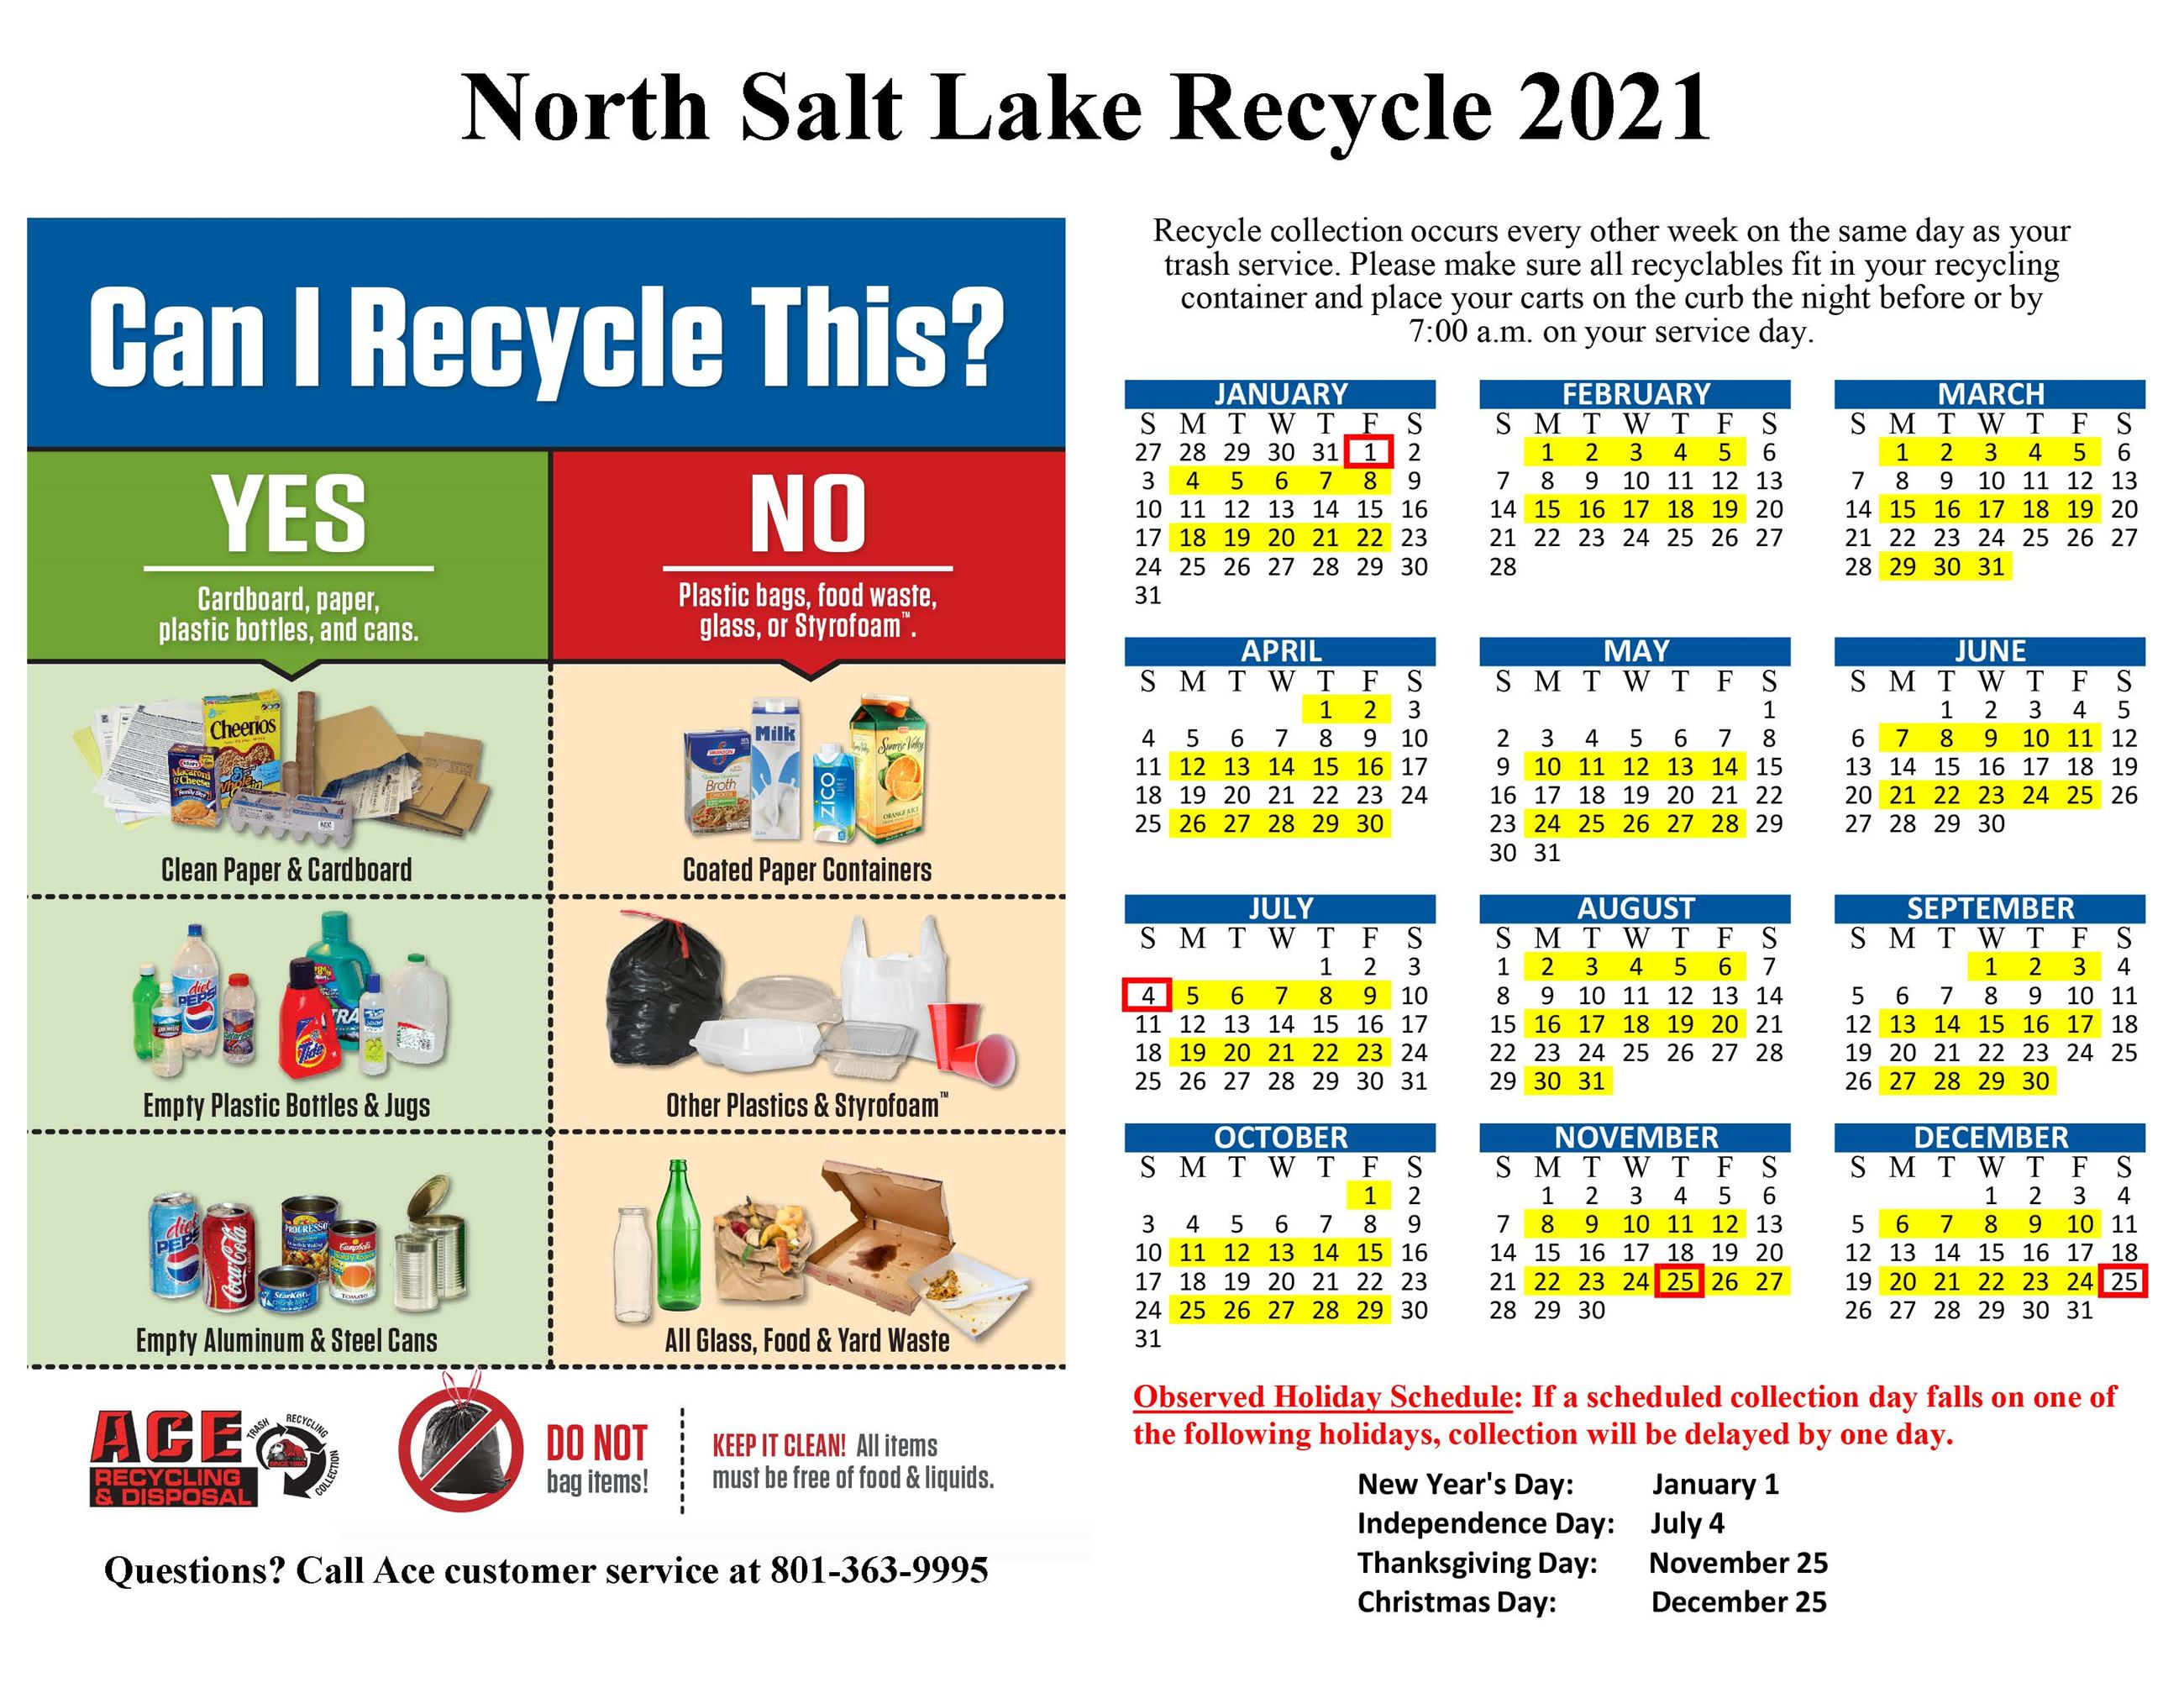 North Salt Lake Recycle Calendar 2021